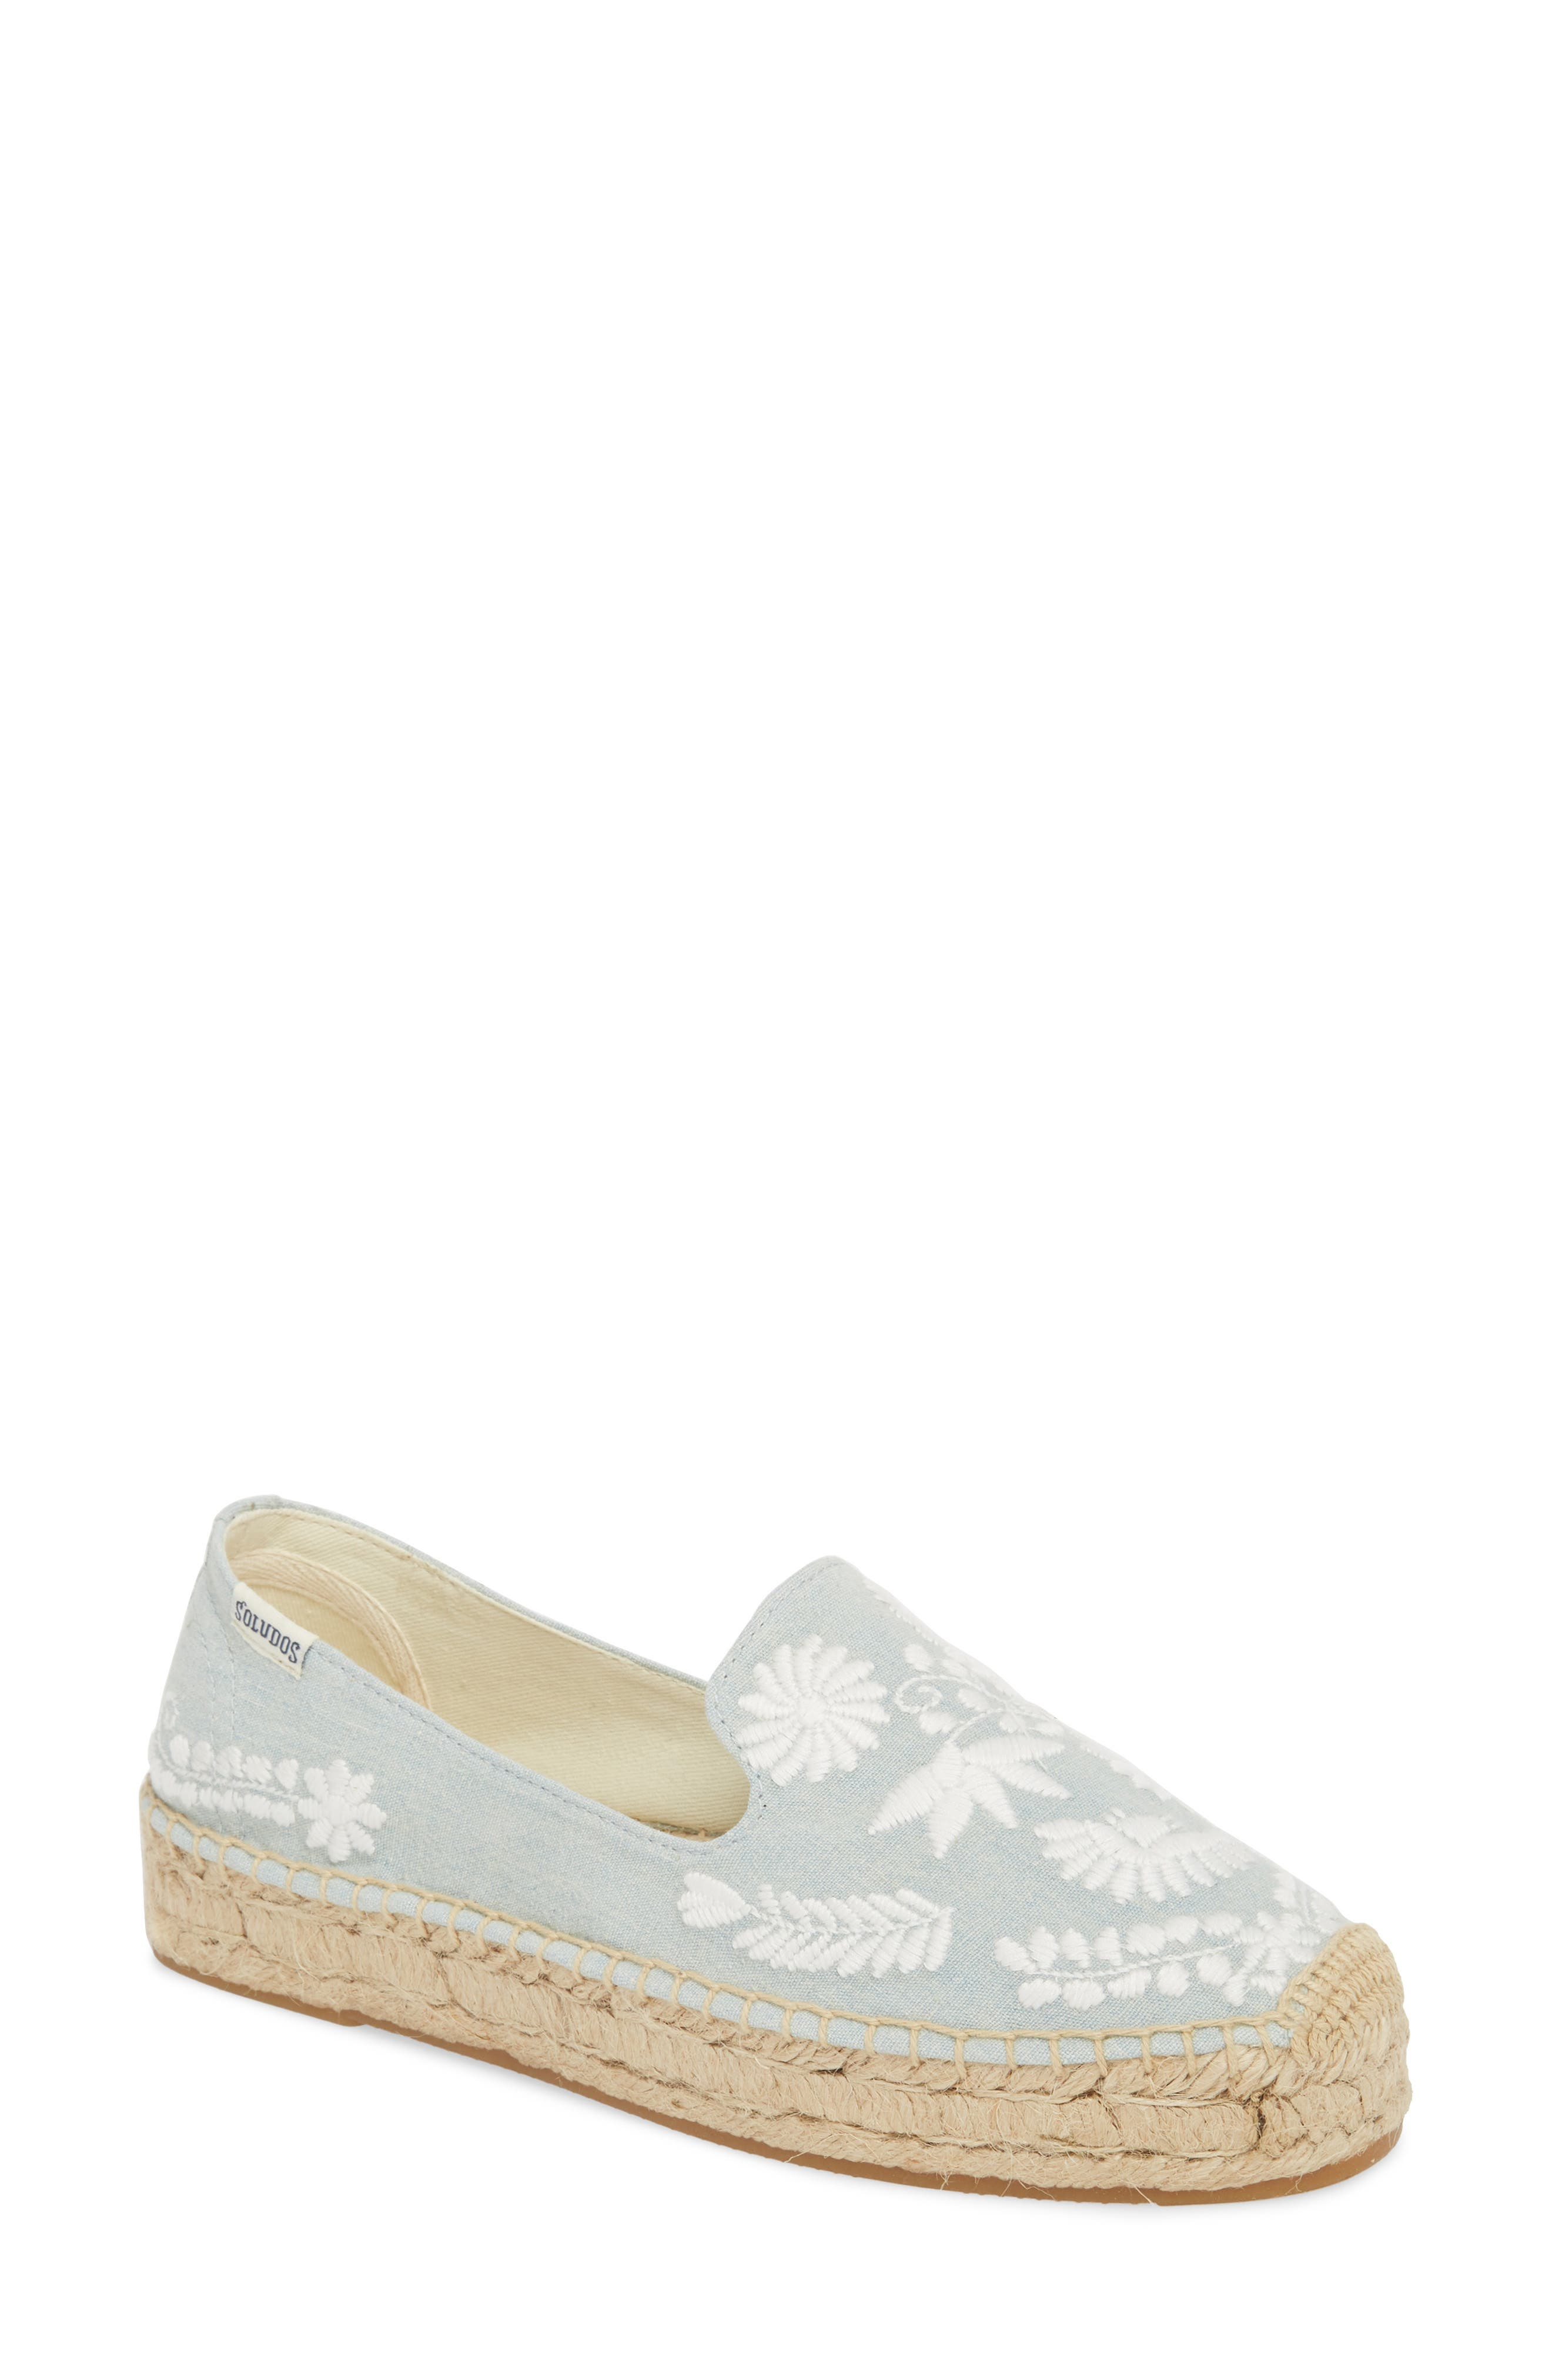 Ibiza Embroidered Loafer Espadrille,                             Main thumbnail 1, color,                             CHAMBRAY